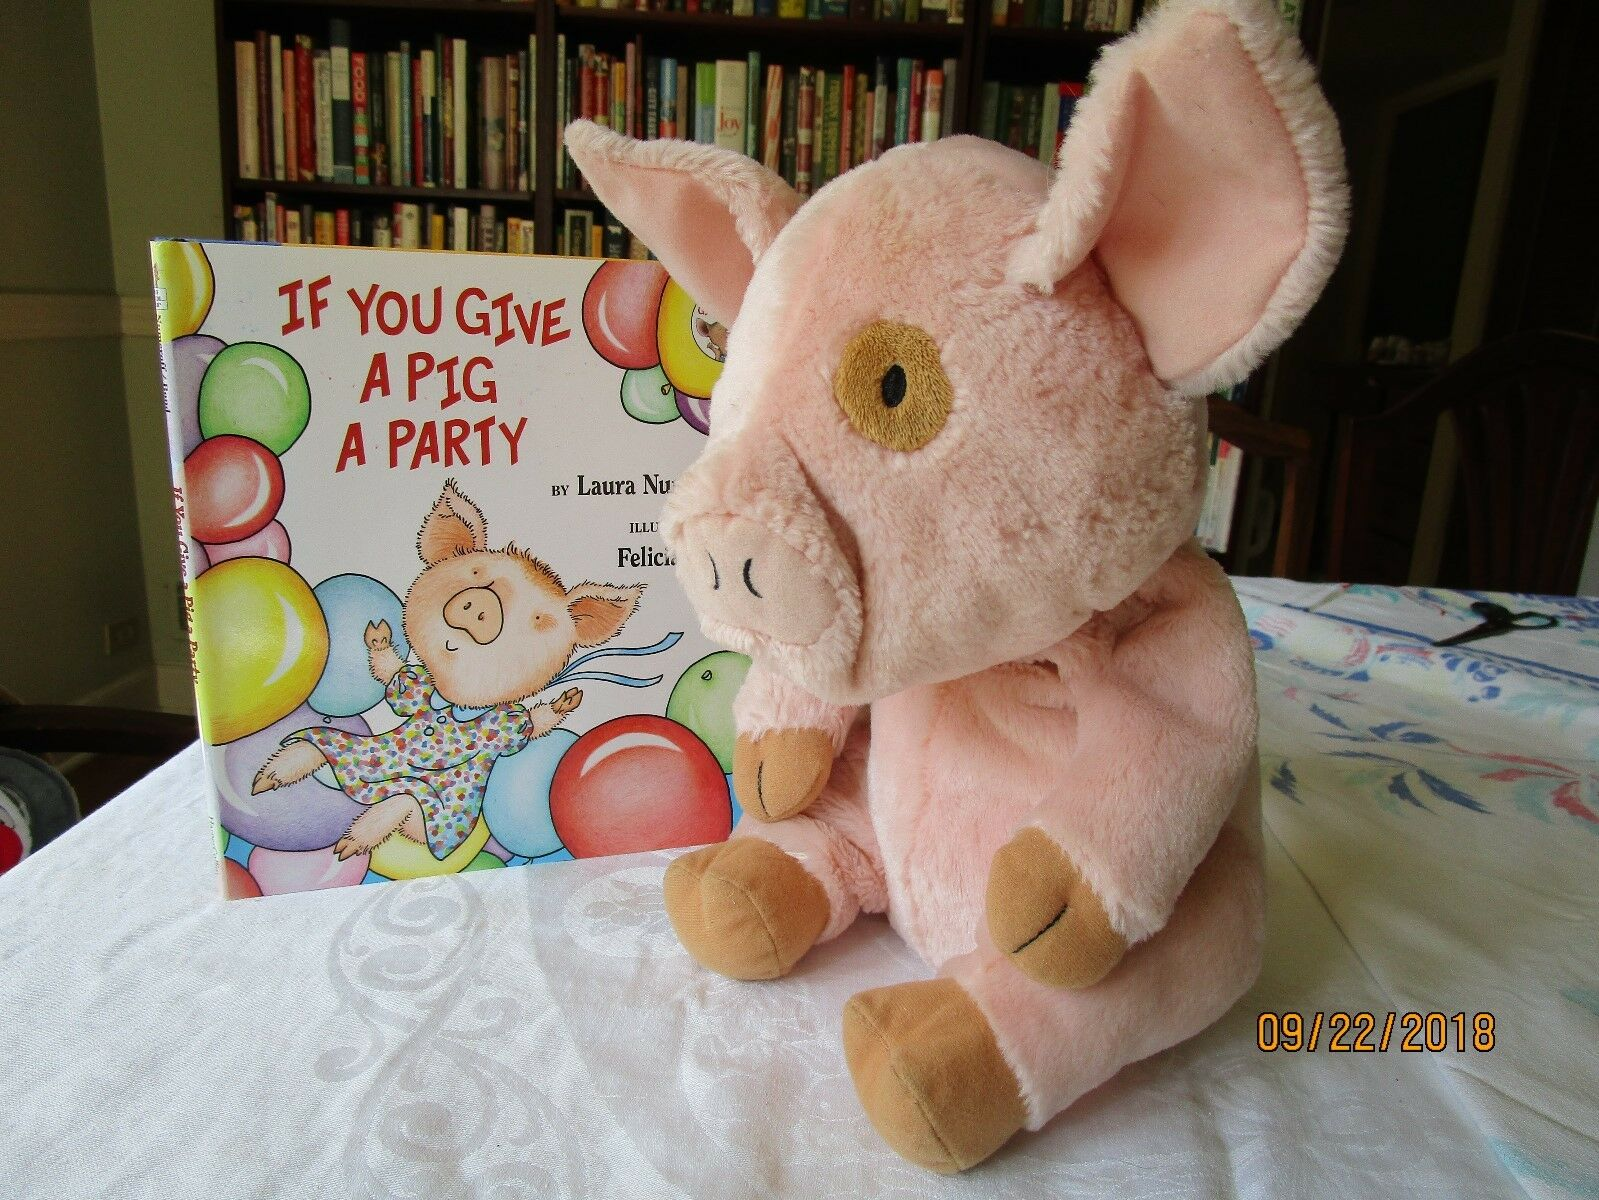 Autographed Autographed Autographed copy If you give a Pig a Party and plush pig Kohl's cares e9f015